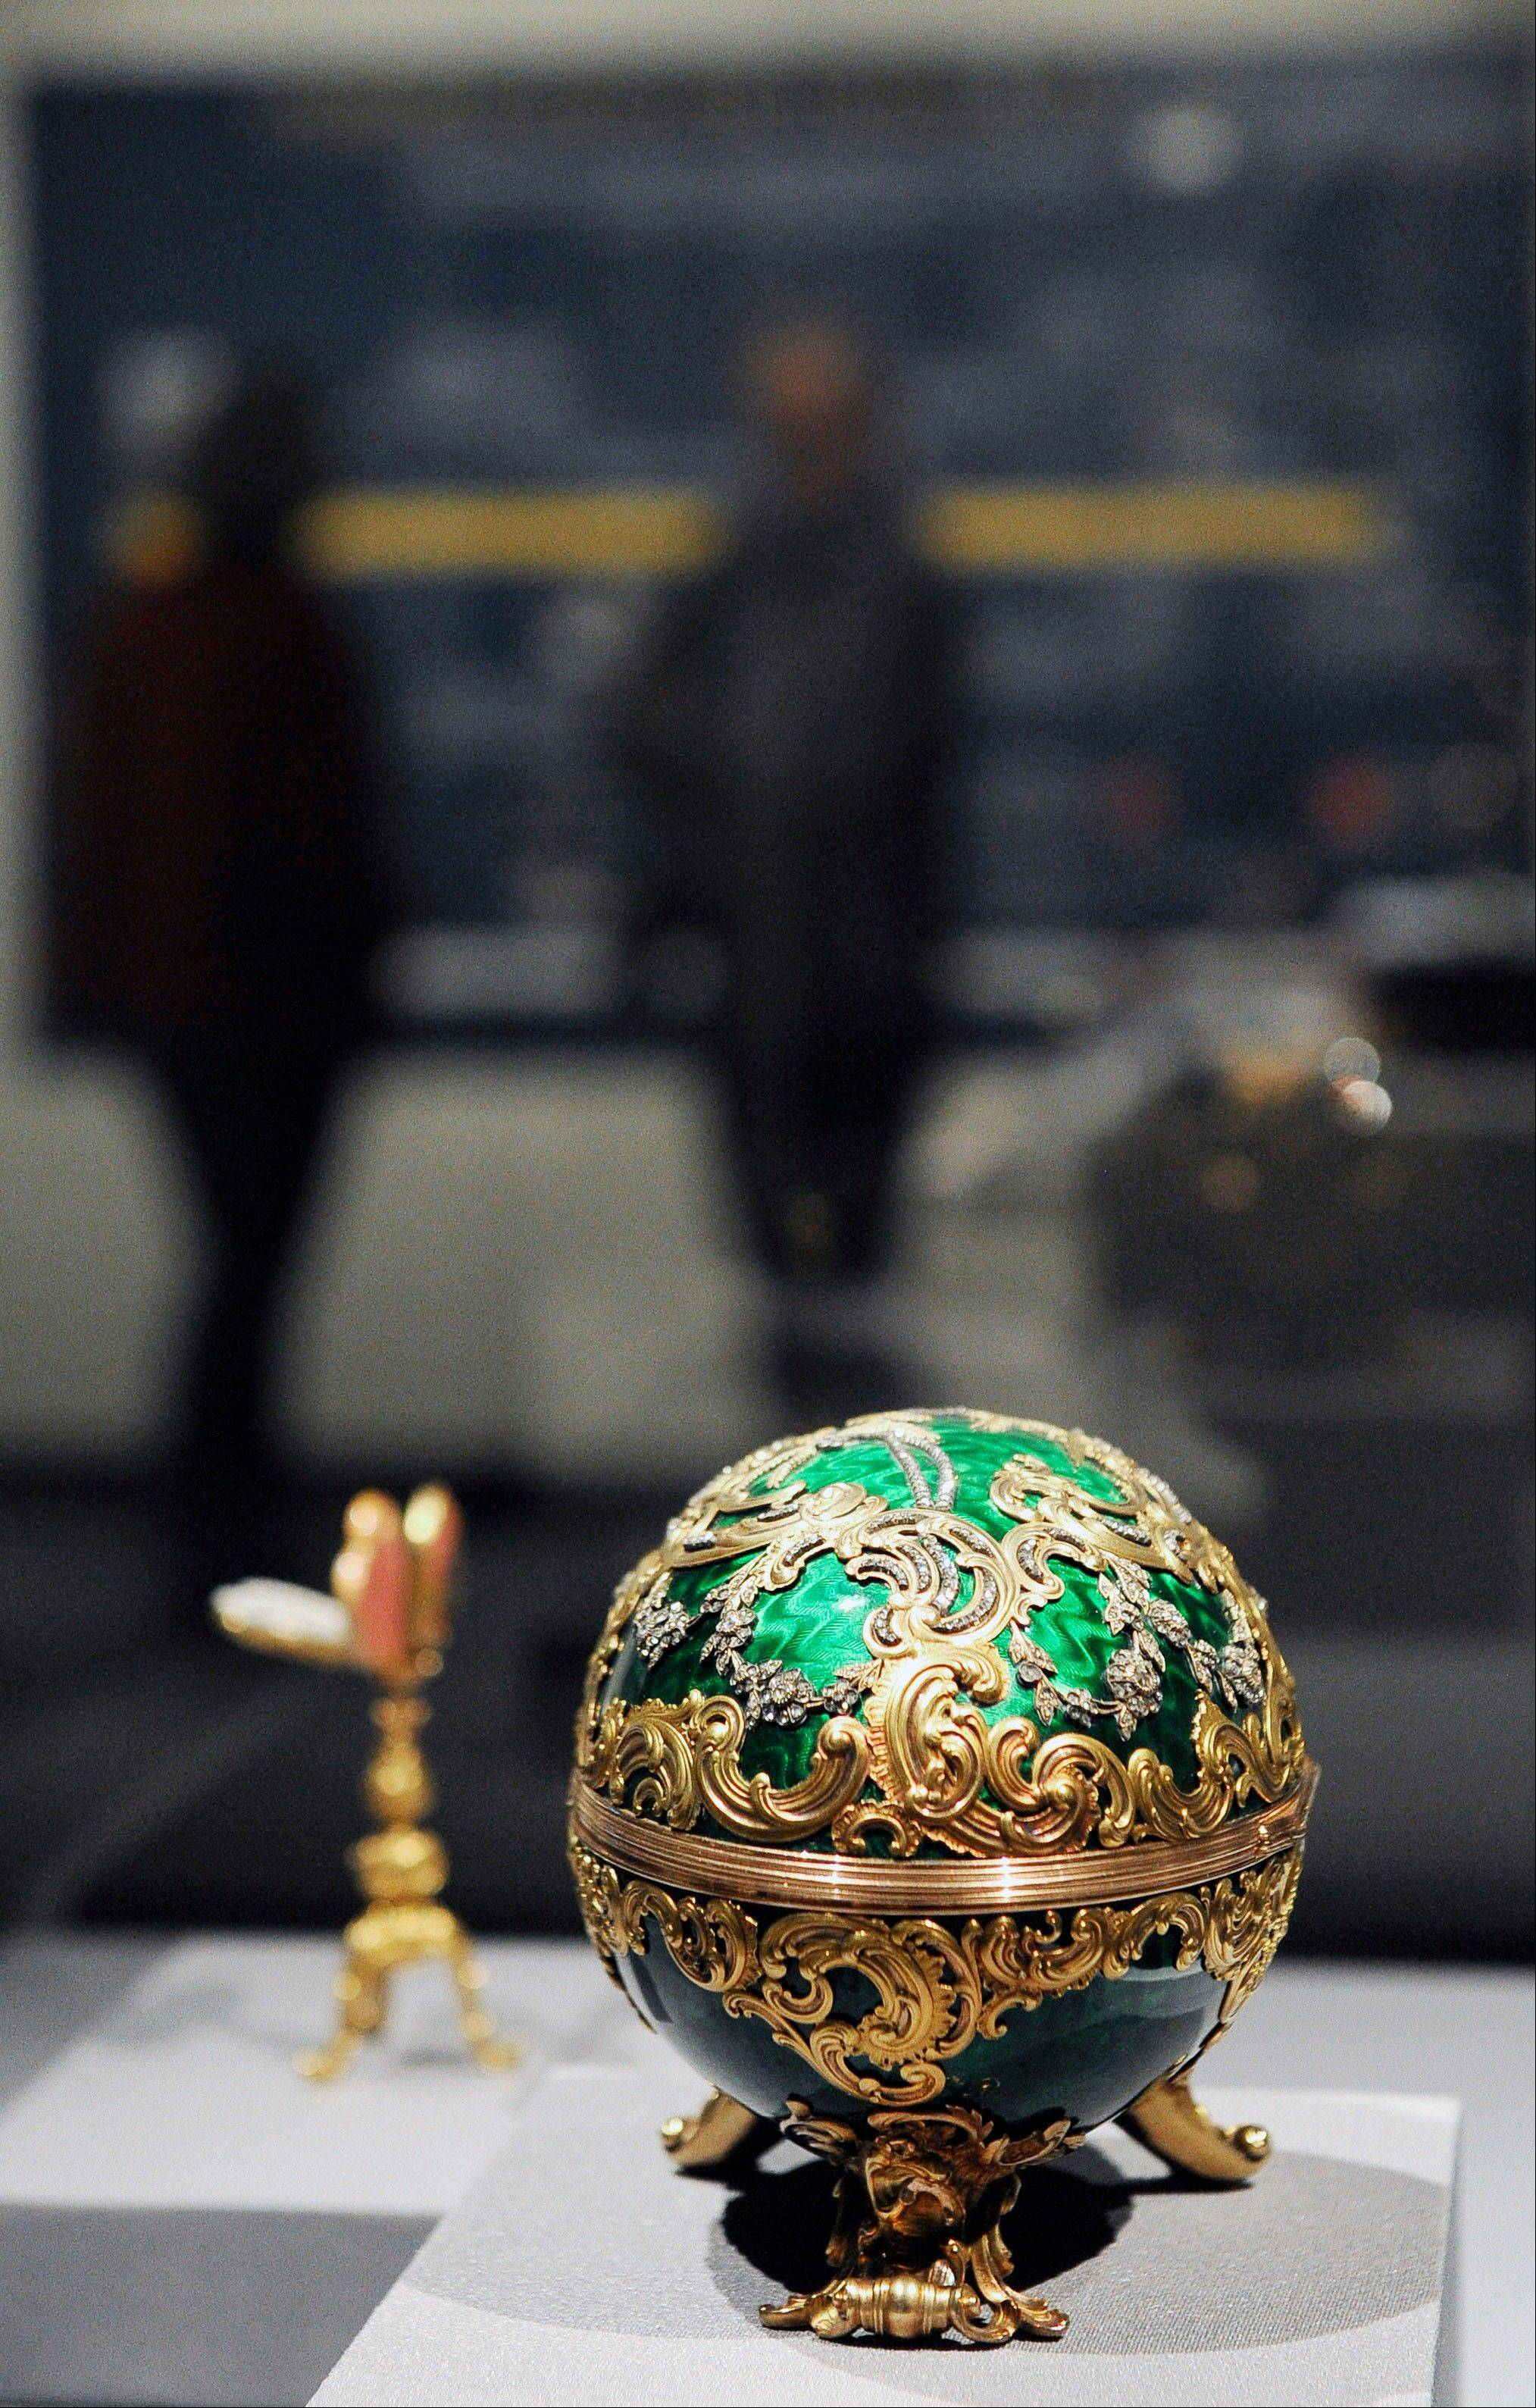 The 1902 Kelch Rocaille Egg sits on display at the Houston Museum of Natural Science as part of the largest private collection of items in the United States from the Russian artisan Peter Carl Faberge.